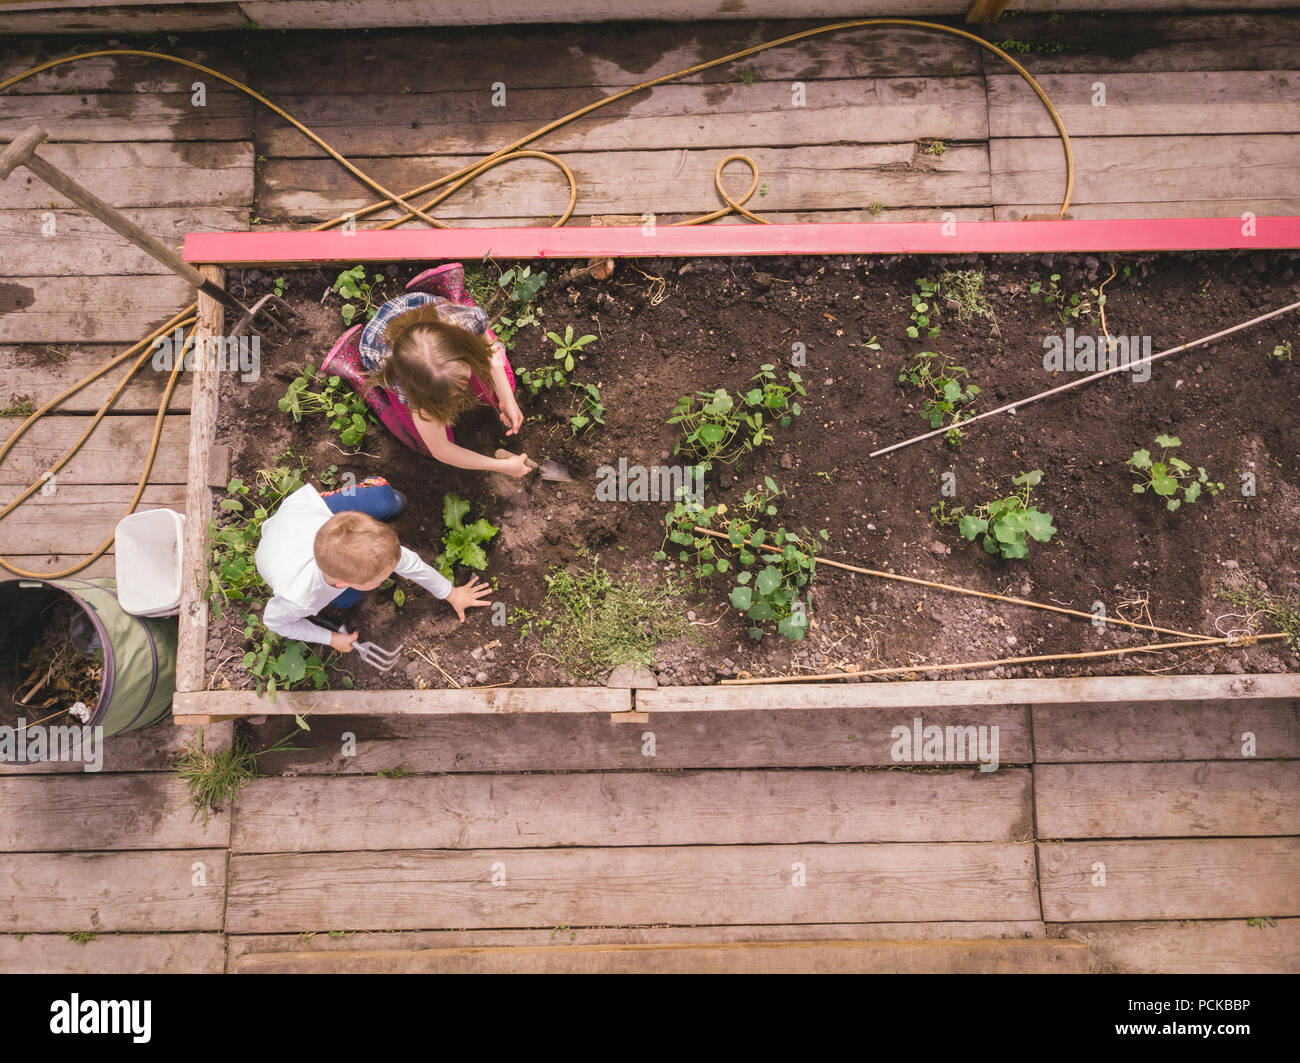 Kids gardening in greenhouse - Stock Image